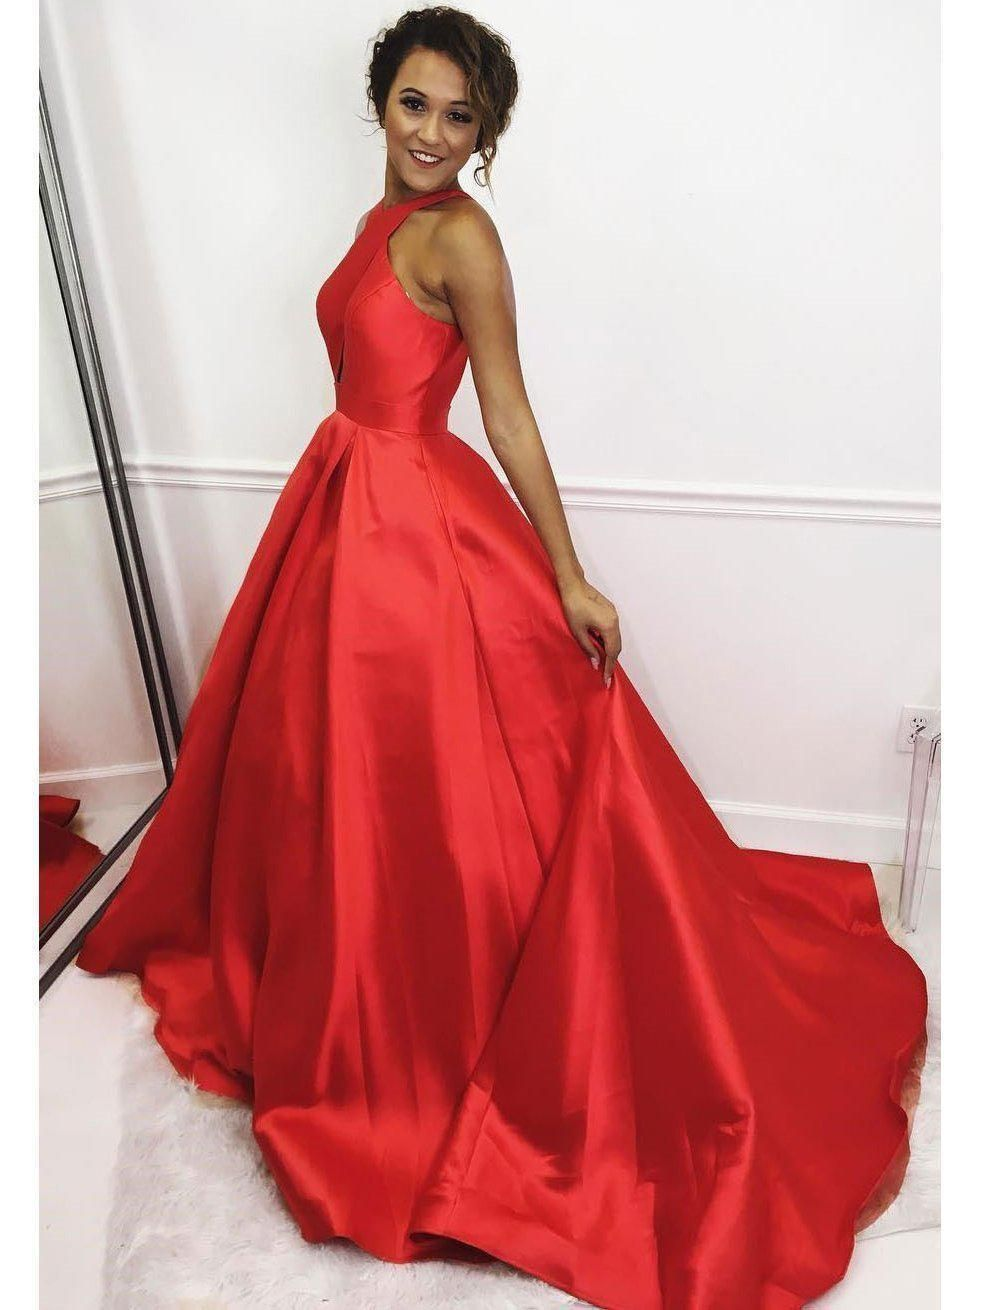 Red Simple Prom Evening Dress Plus Size Long A Line Satin Graduation Dresses G4368 Simple Prom Dress Red Prom Dress Prom Dresses [ 1310 x 983 Pixel ]